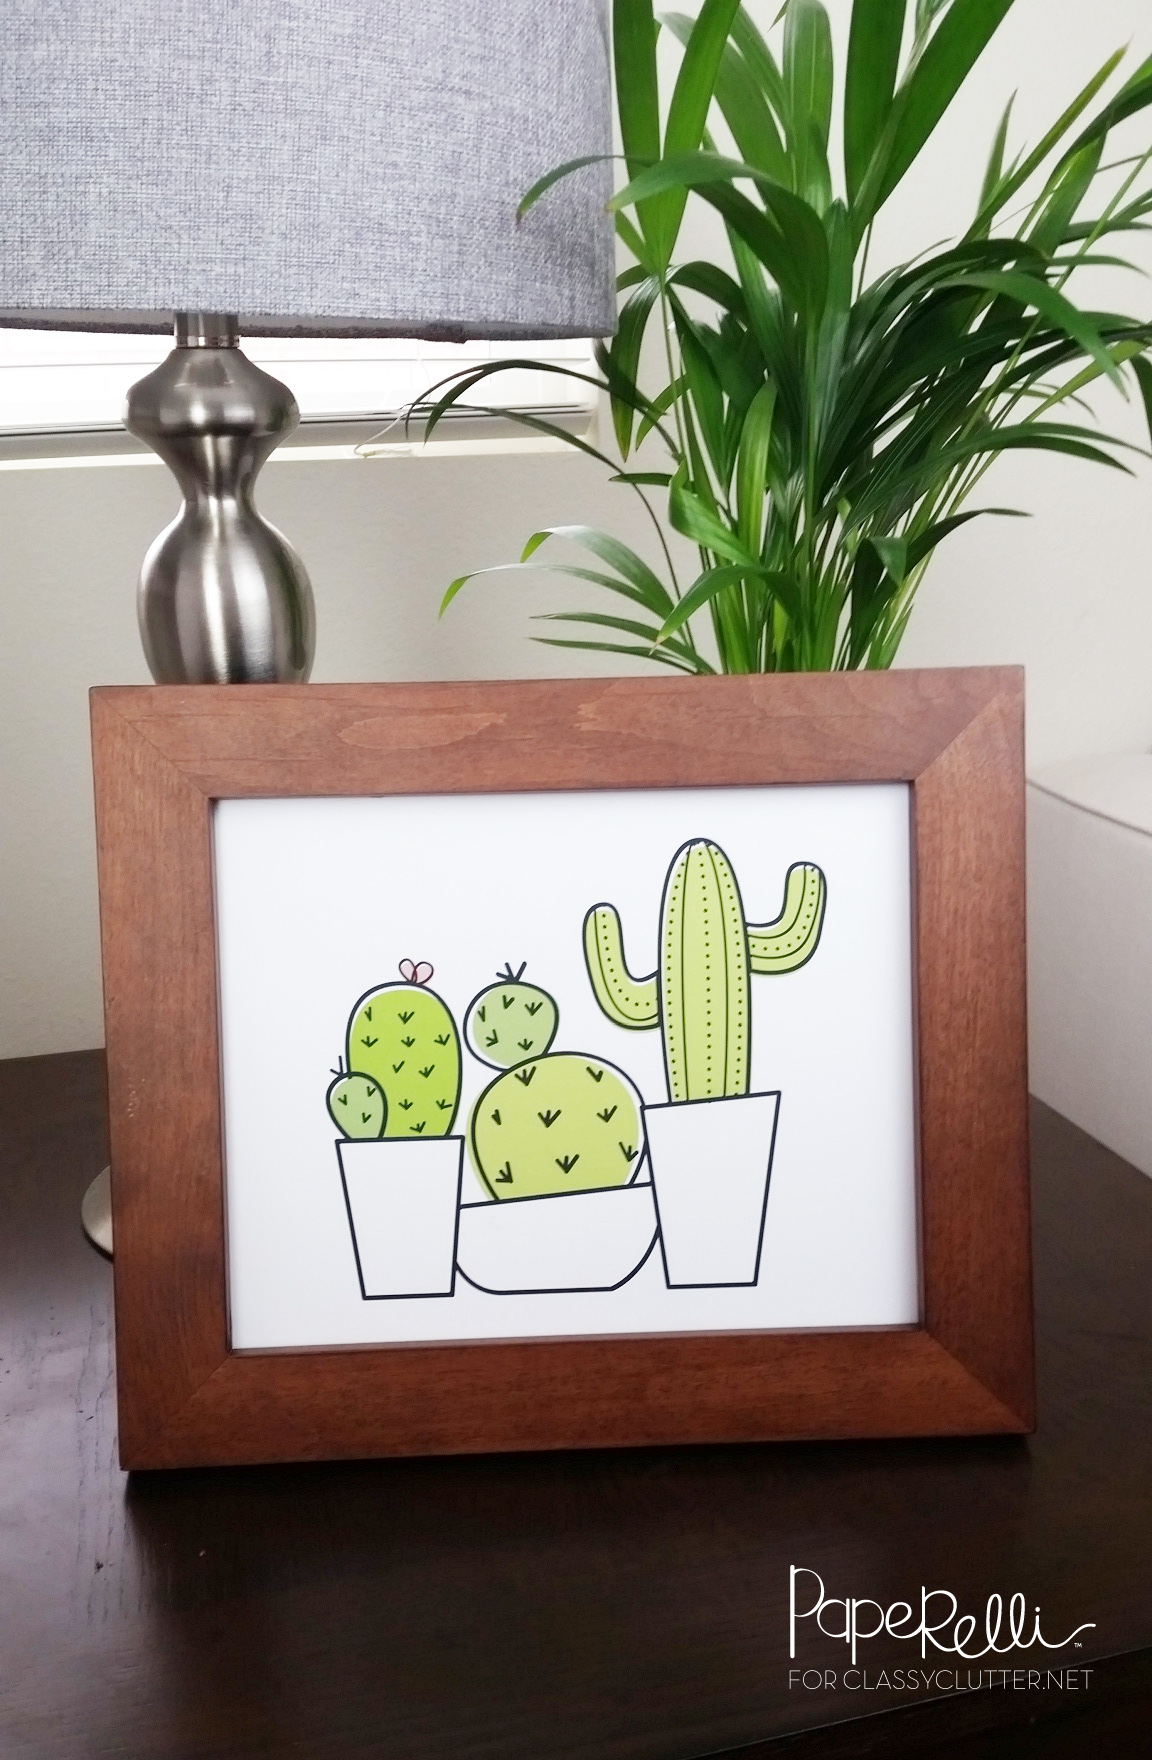 image regarding Cactus Printable called No cost Cactus Printable - Cly Muddle